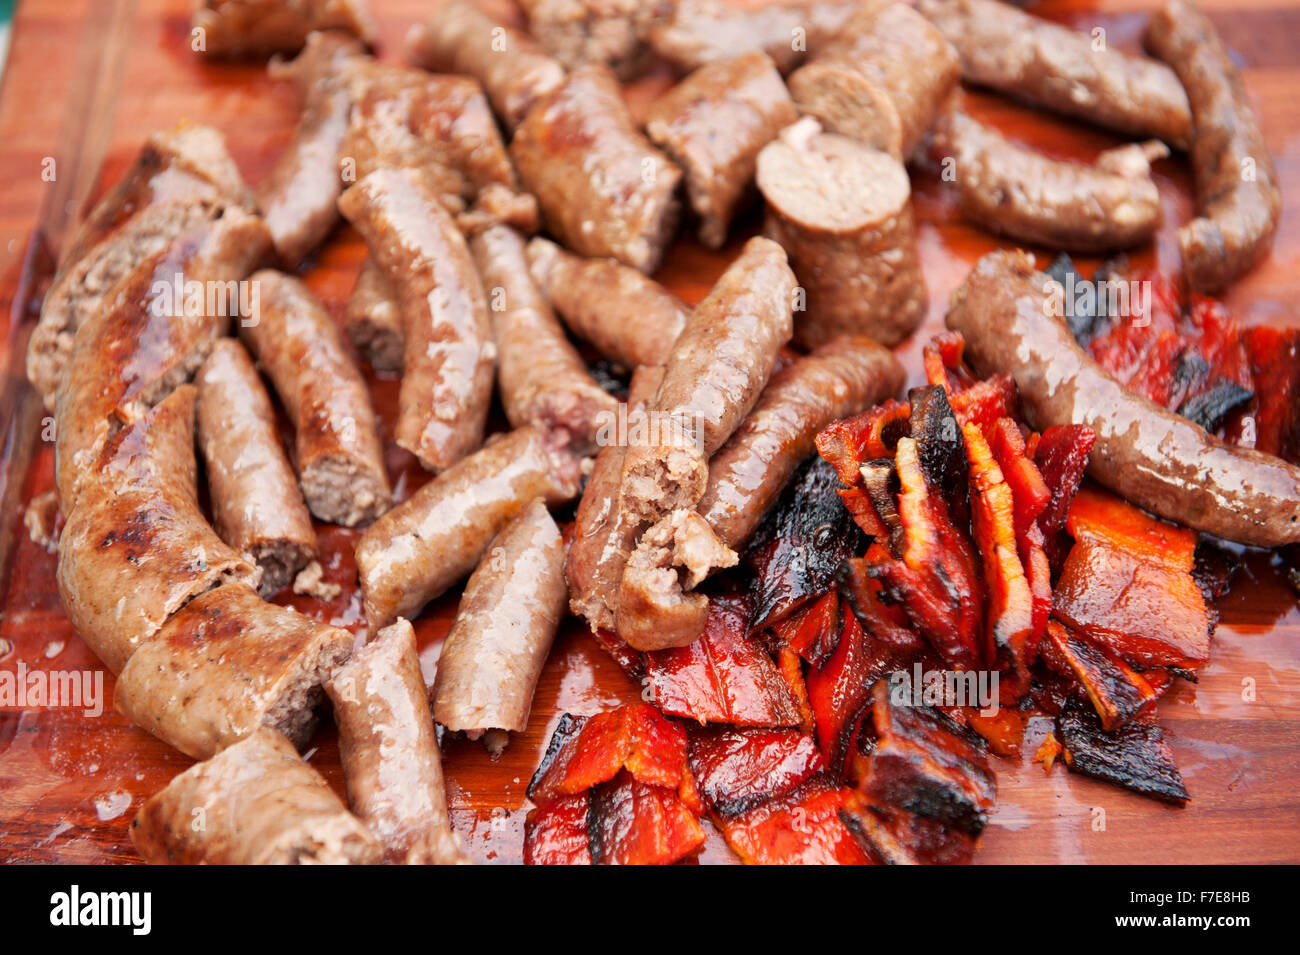 Traditional South African Boerwors sausage cooks on a Braai, or South African barbecue..  Durban South Africa. - Stock Image